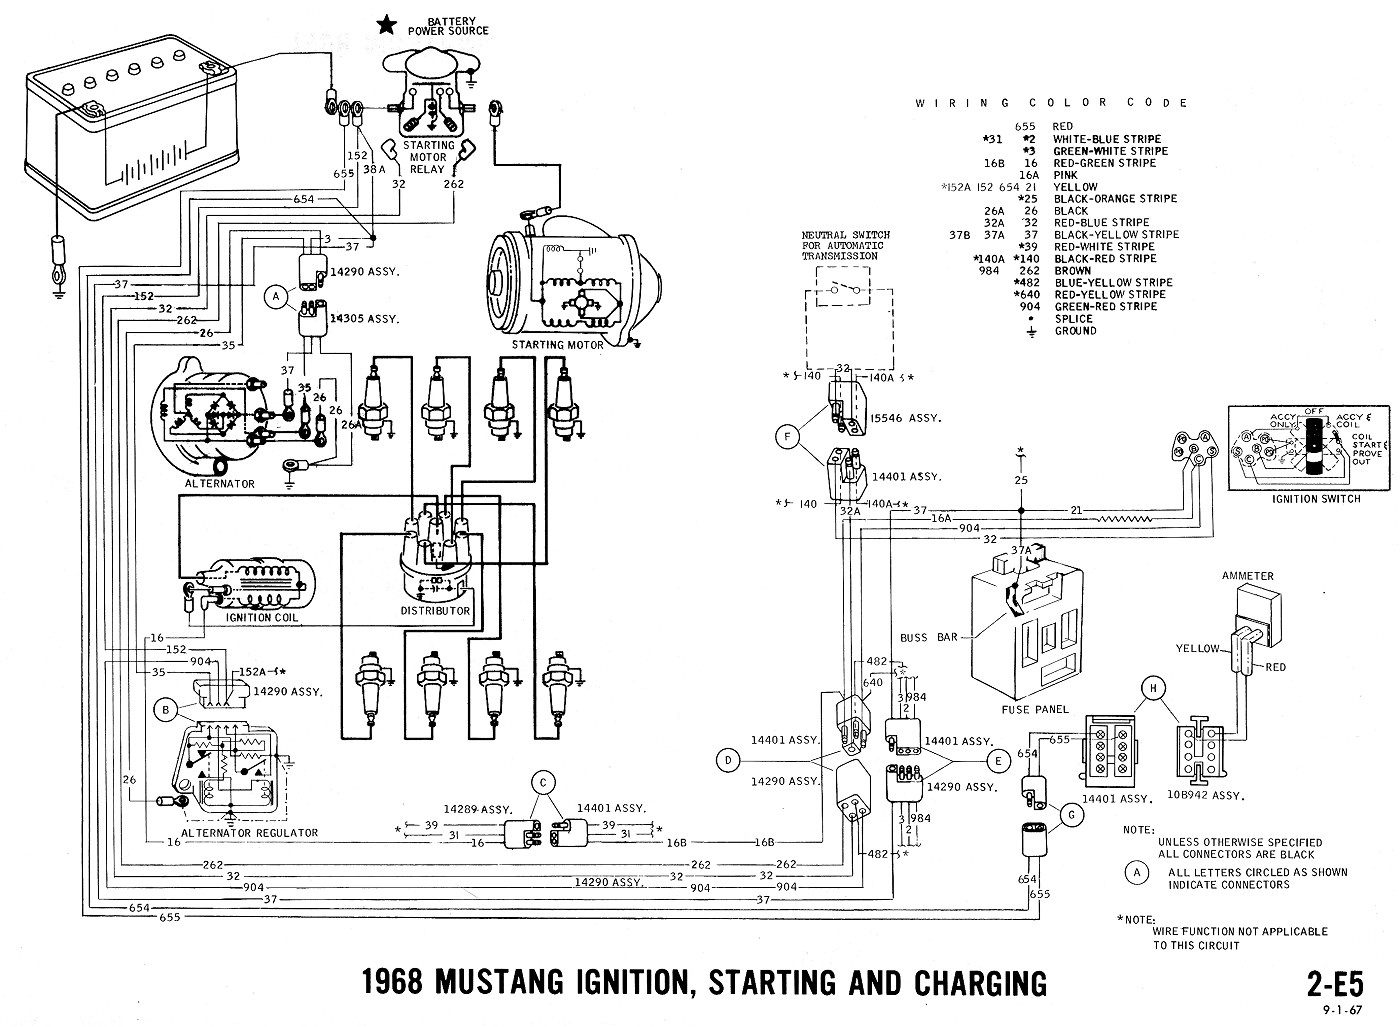 E5 1968 mustang wiring diagrams evolving software 68 Mustang Wiring Diagram at webbmarketing.co